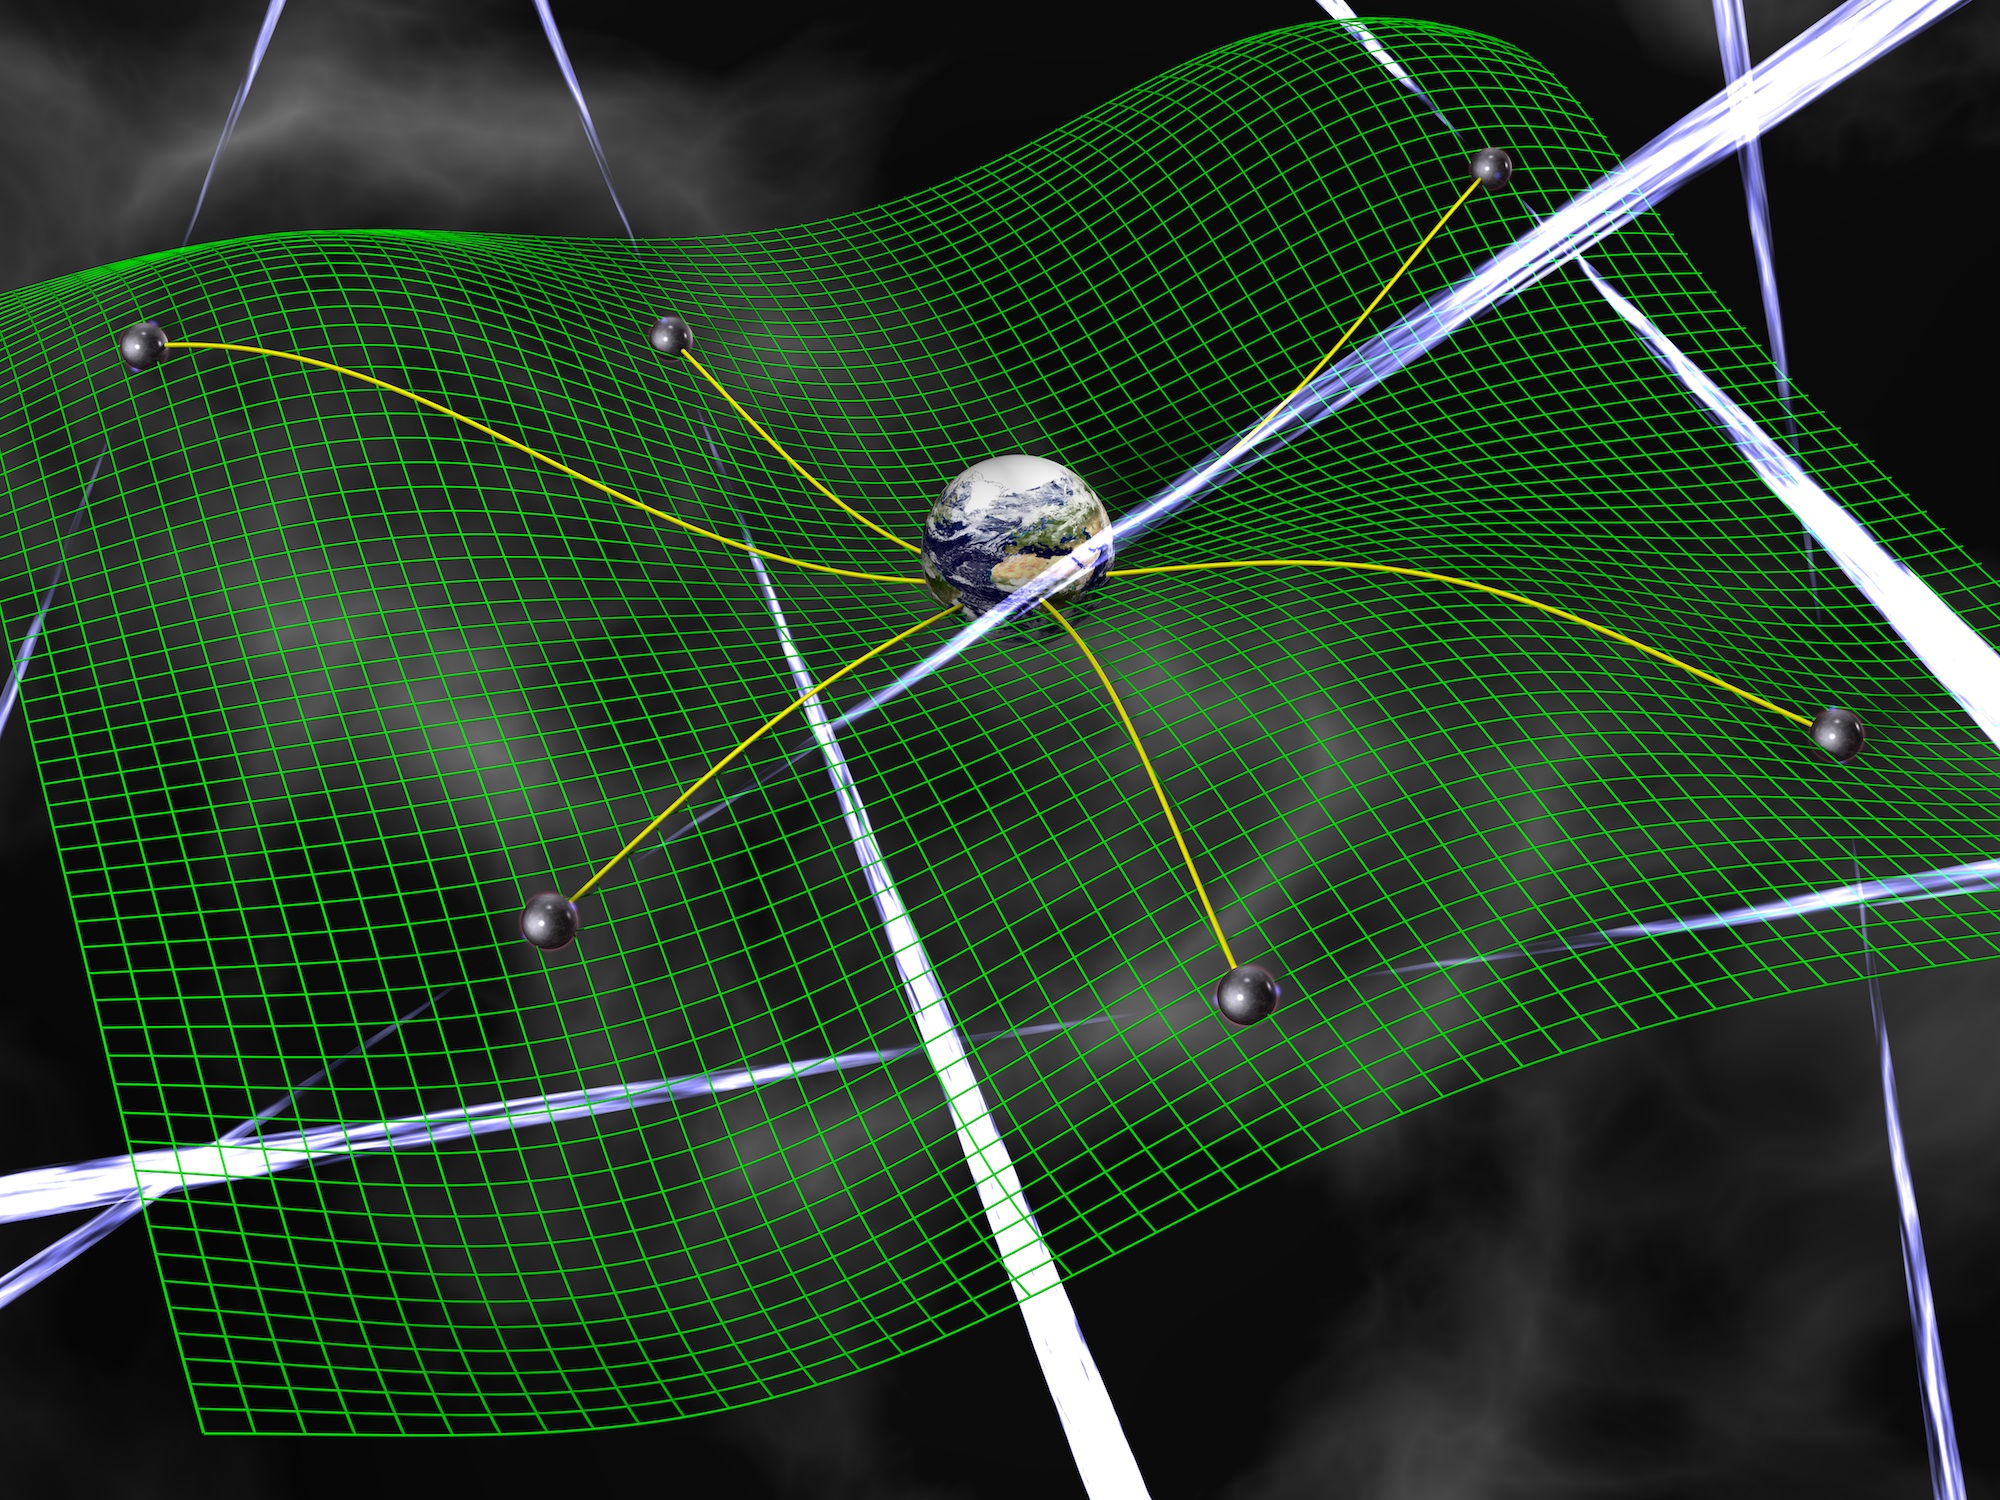 Gravitational waves are ripples in space-time, represented by the green grid, produced by accelerating bodies such as interacting supermassive black holes. These waves affect the time it takes for radio signals from pulsars to arrive at Earth. - Image   Credits: David Champion